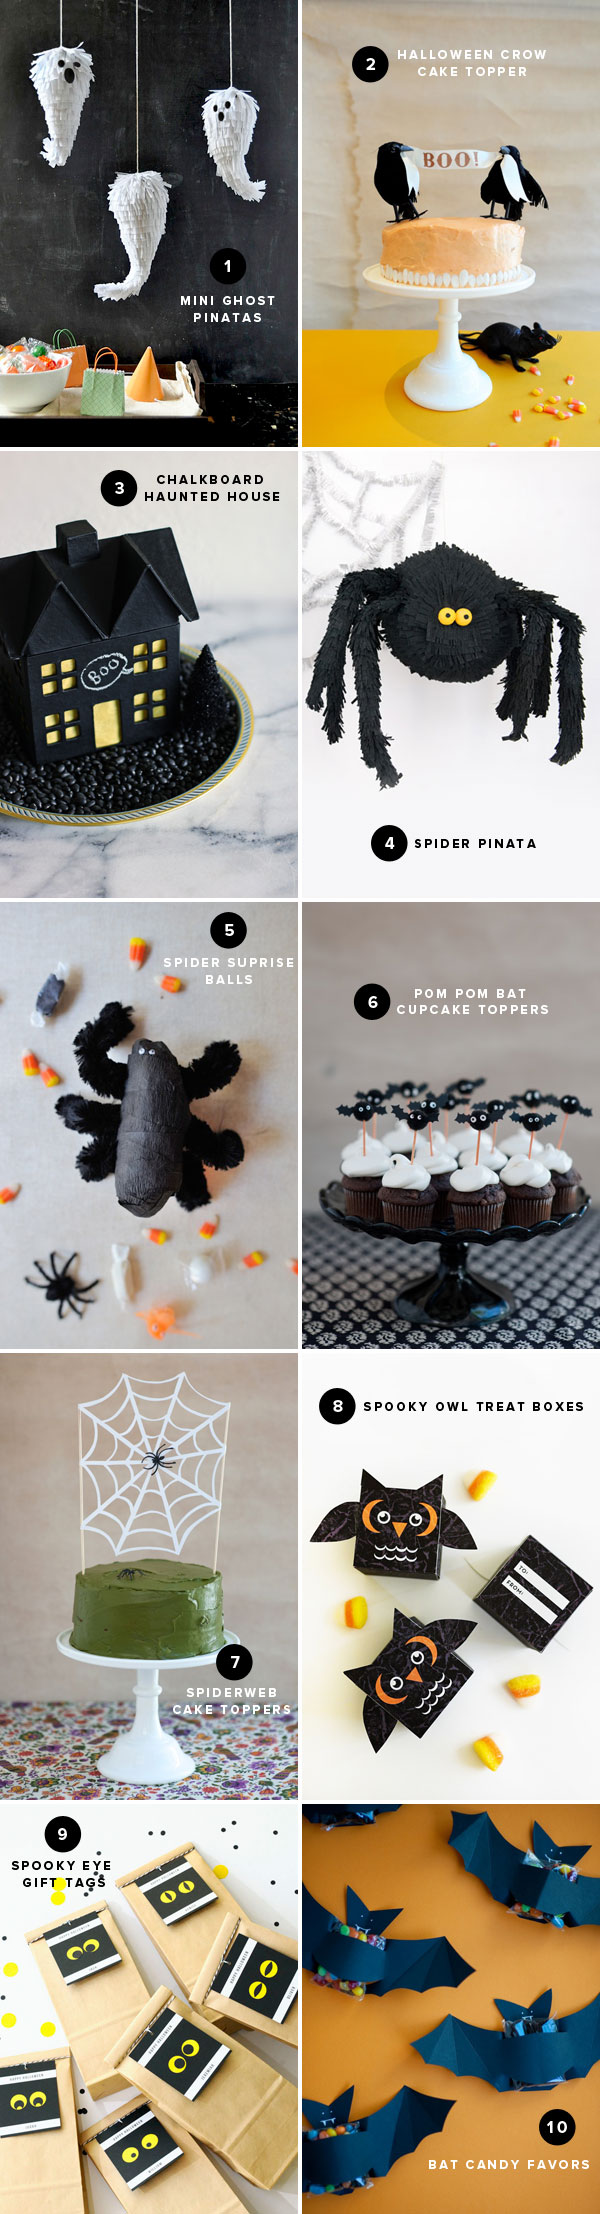 Halloween DIY Ideas | Oh Happy Day!